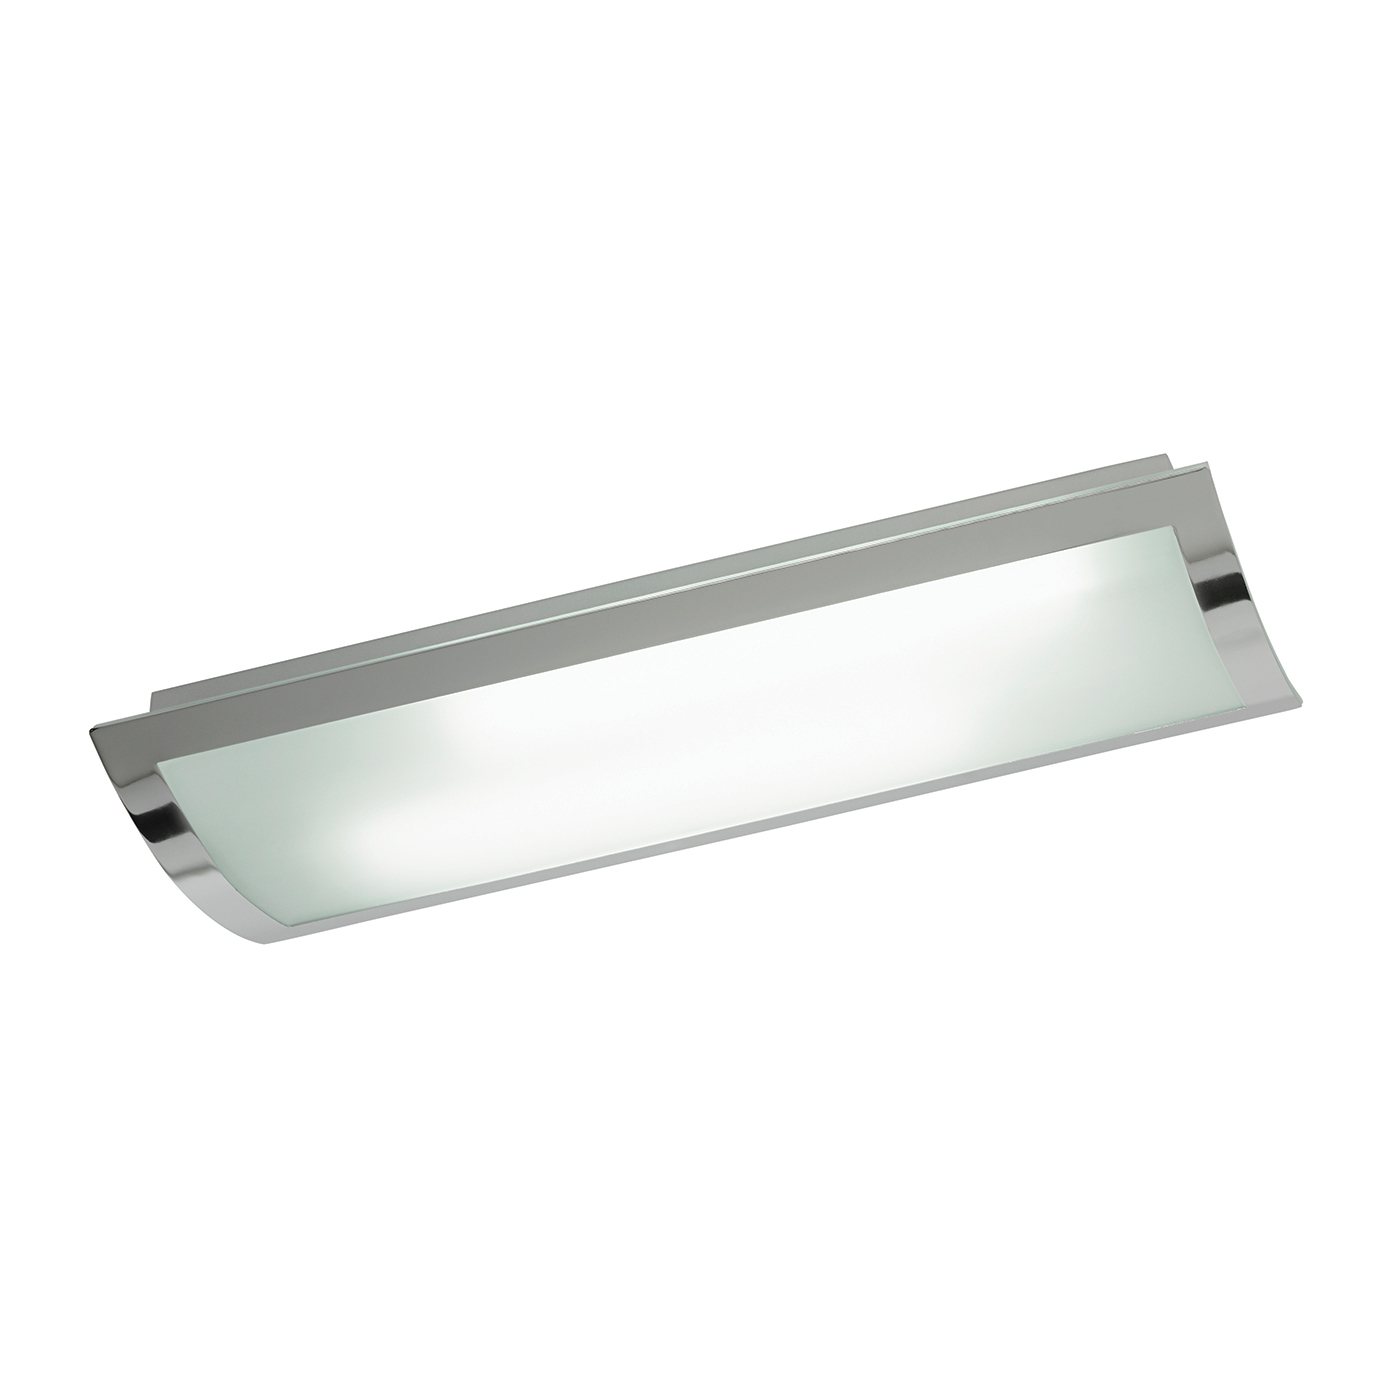 Endon Bay 675mm rectangle flush ceiling light HF 36W Chrome effect frosted glass Thumbnail 1